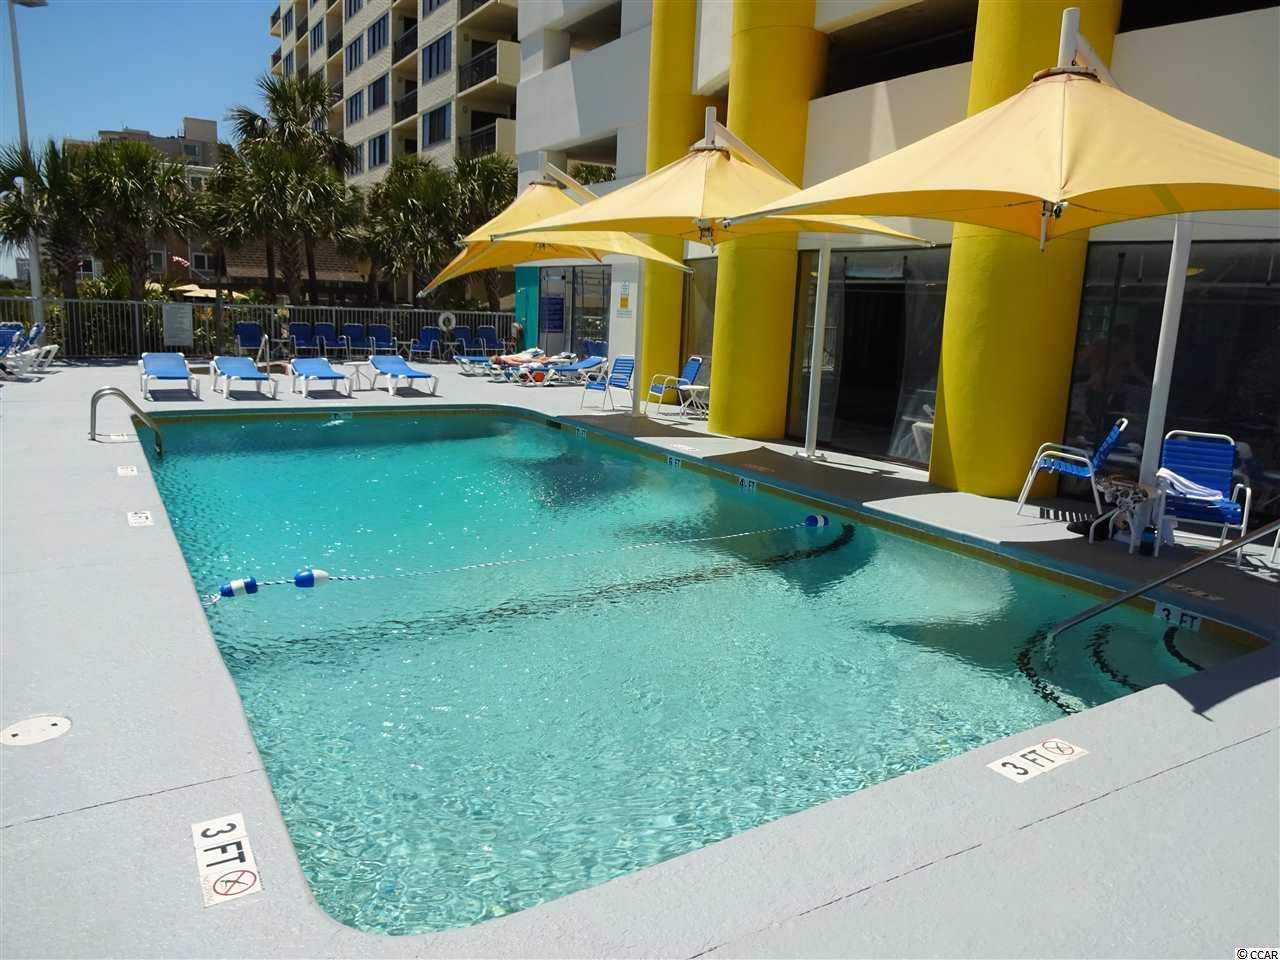 Have you seen this  Seaside Inn Resort property for sale in North Myrtle Beach